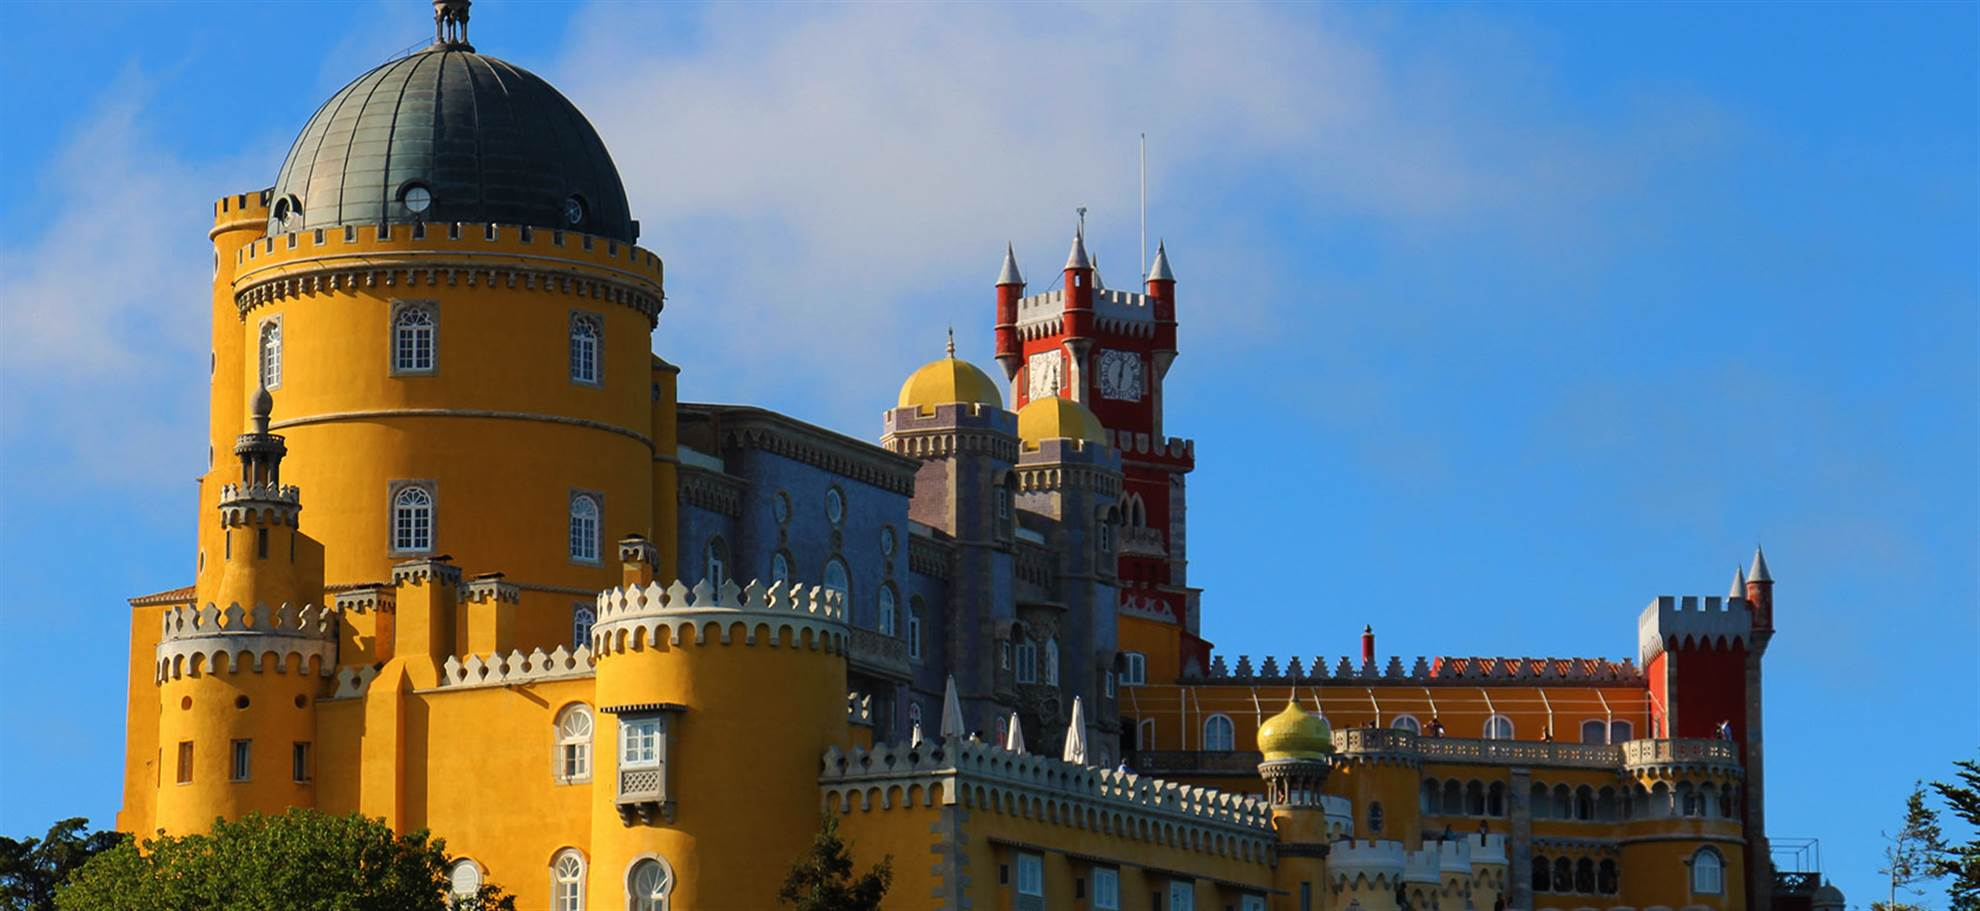 Sintra Royal Palaces